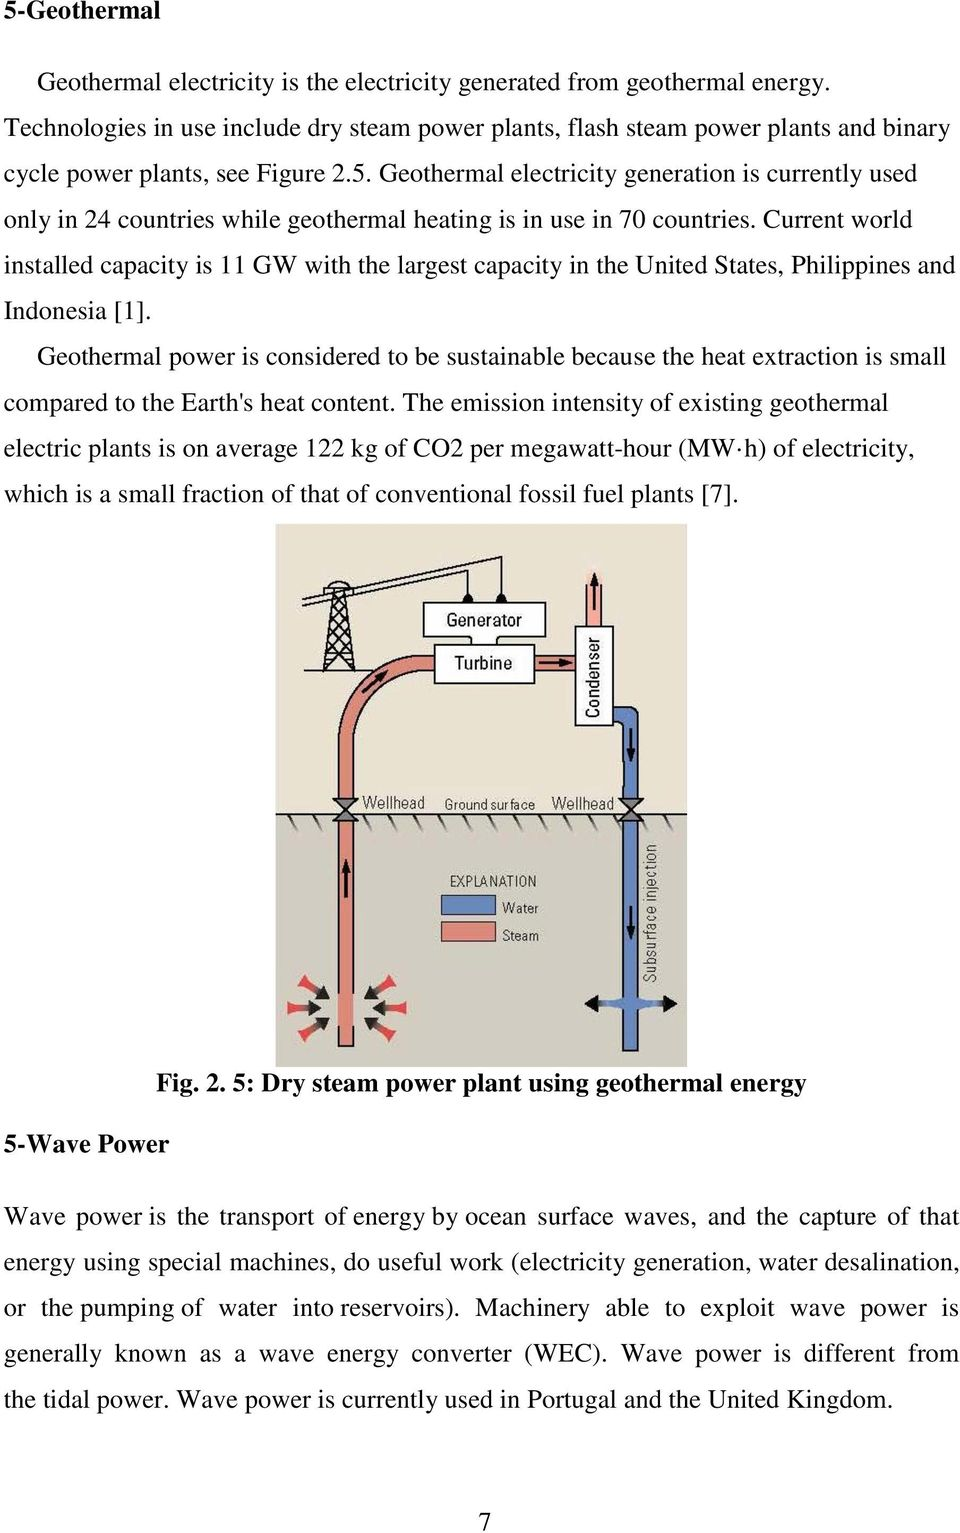 List Of Contents Tablesiii Figures Iv Dry Steam Power Plant Diagram Geothermal Electricity Generation Is Currently Used Only In 24 Countries While Heating Use